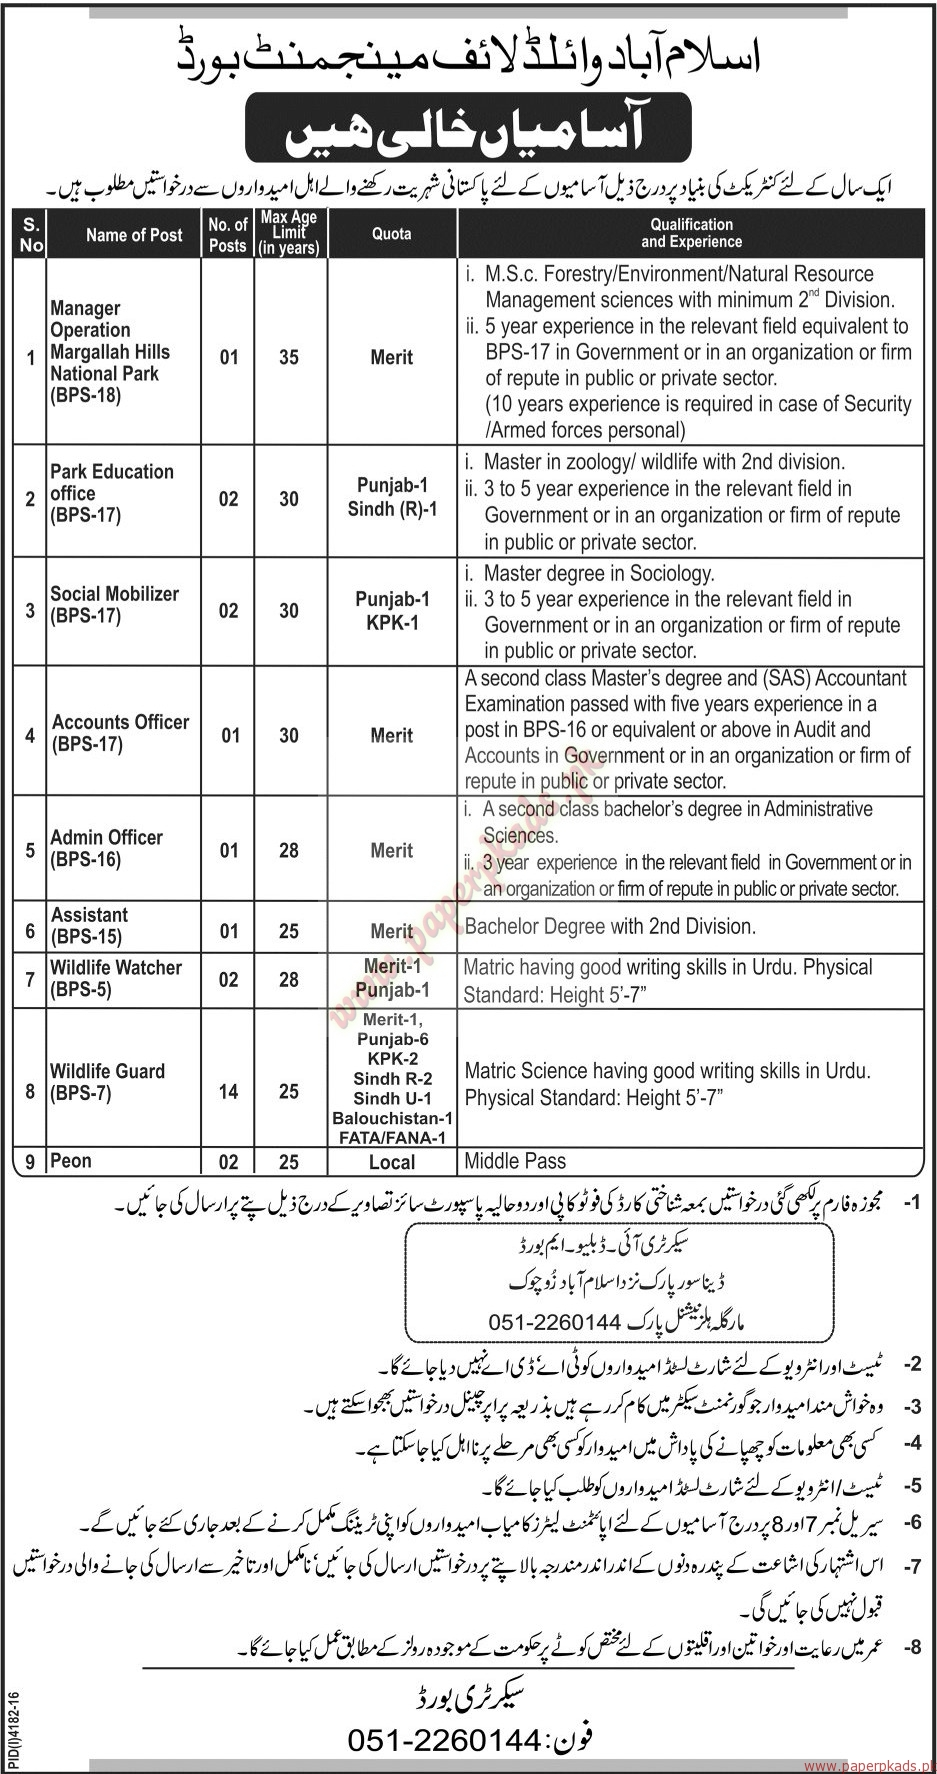 islamabad wild life management board jobs jang jobs ads 14 islamabad wild life management board jobs jang jobs ads 14 2017